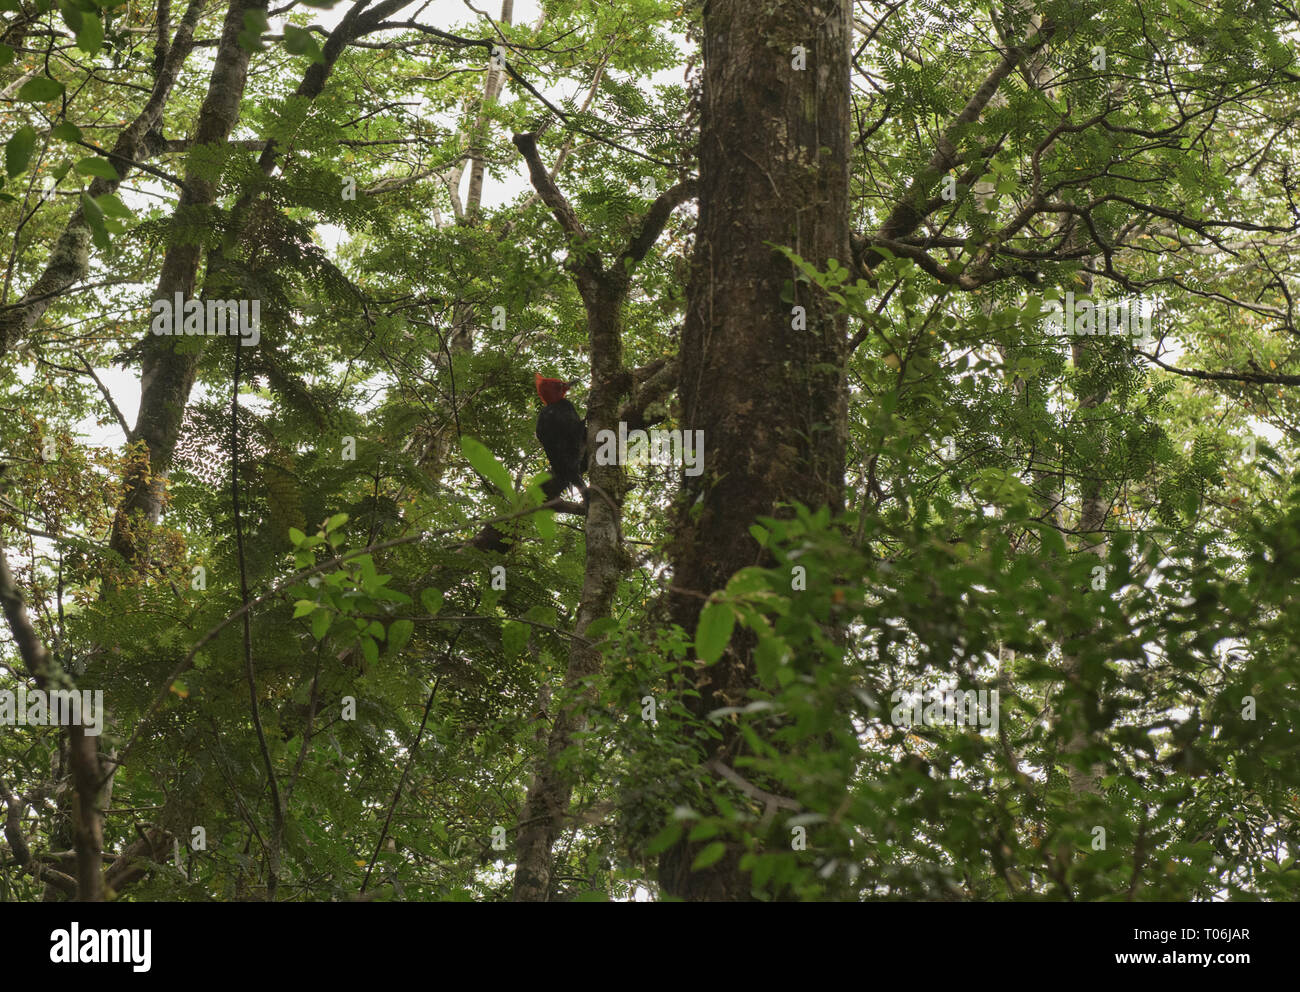 Magellanic woodpecker (Campephilus magellanicus) in Queulat National Park, Patagonia, Aysen, Chile - Stock Image